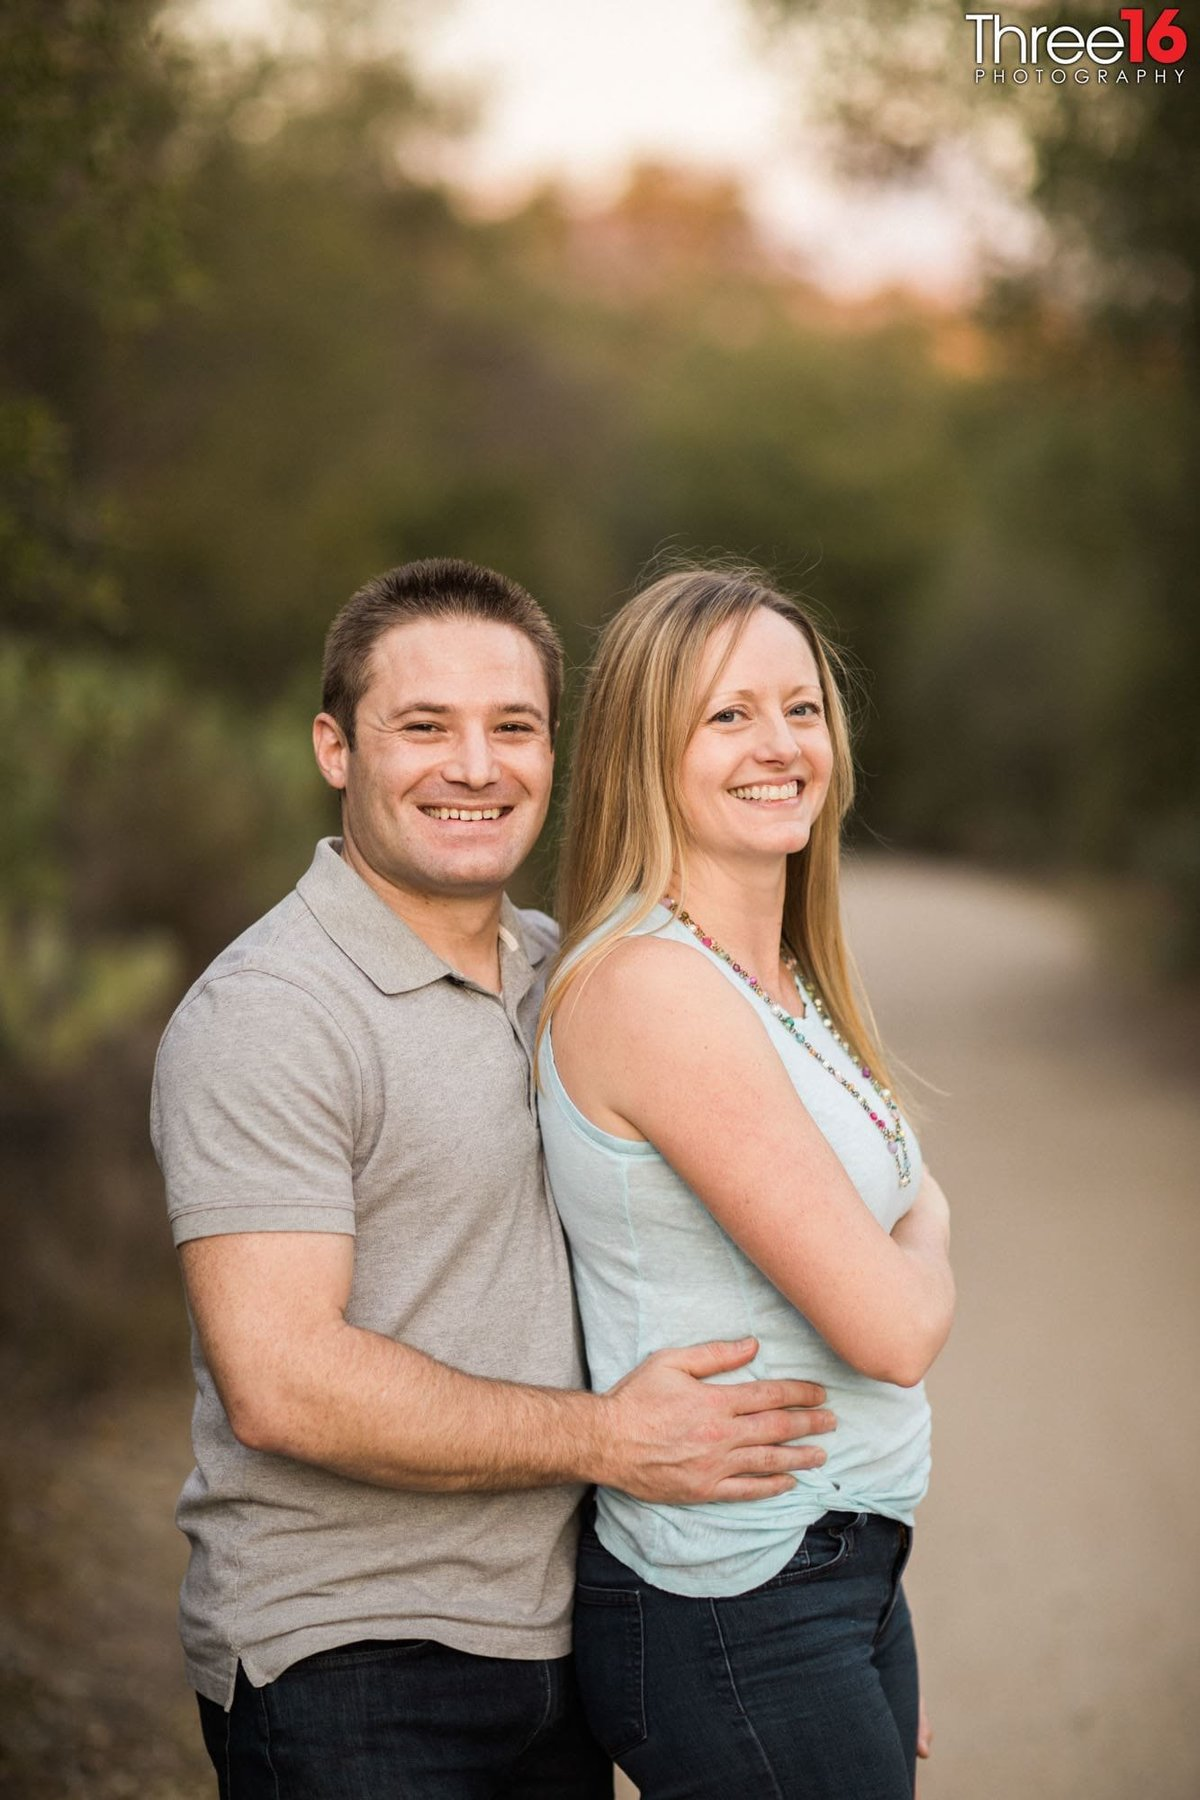 Whiting Ranch Wilderness Park Engagement Photos Trabuco Canyon Professional Photography